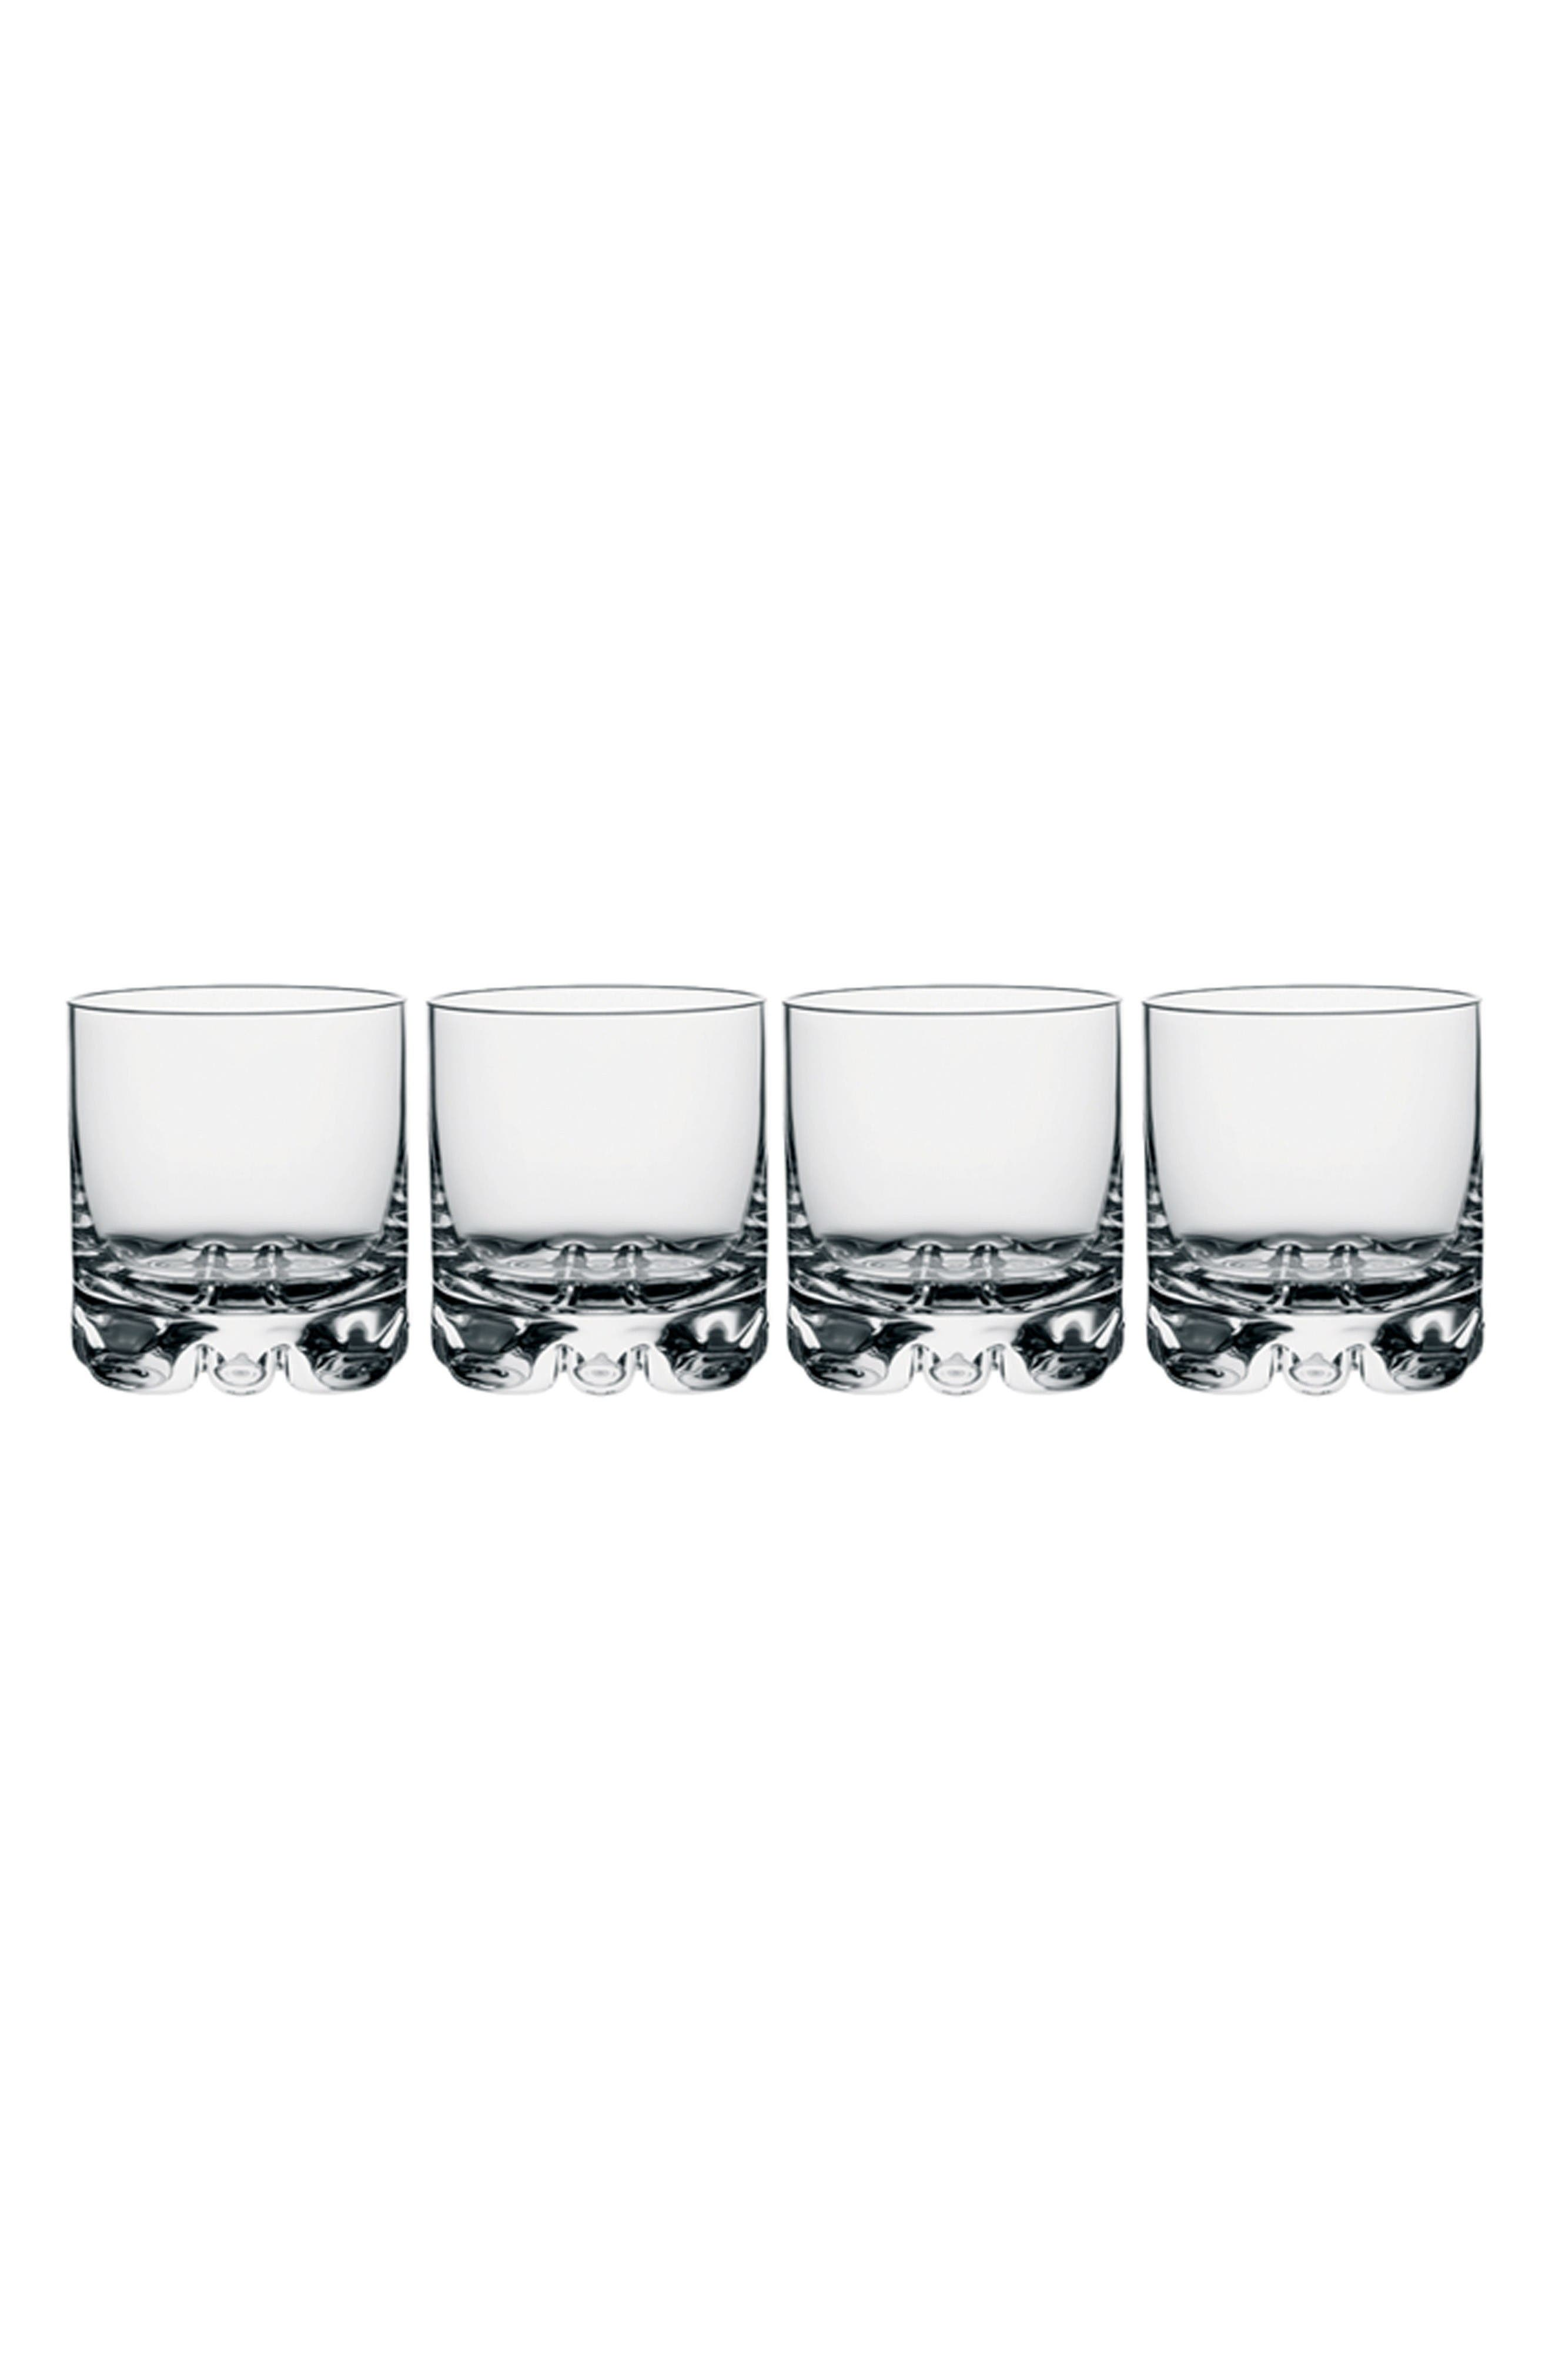 Alternate Image 1 Selected - Orrefors Erik Set of 4 Double Old Fashioned Glasses